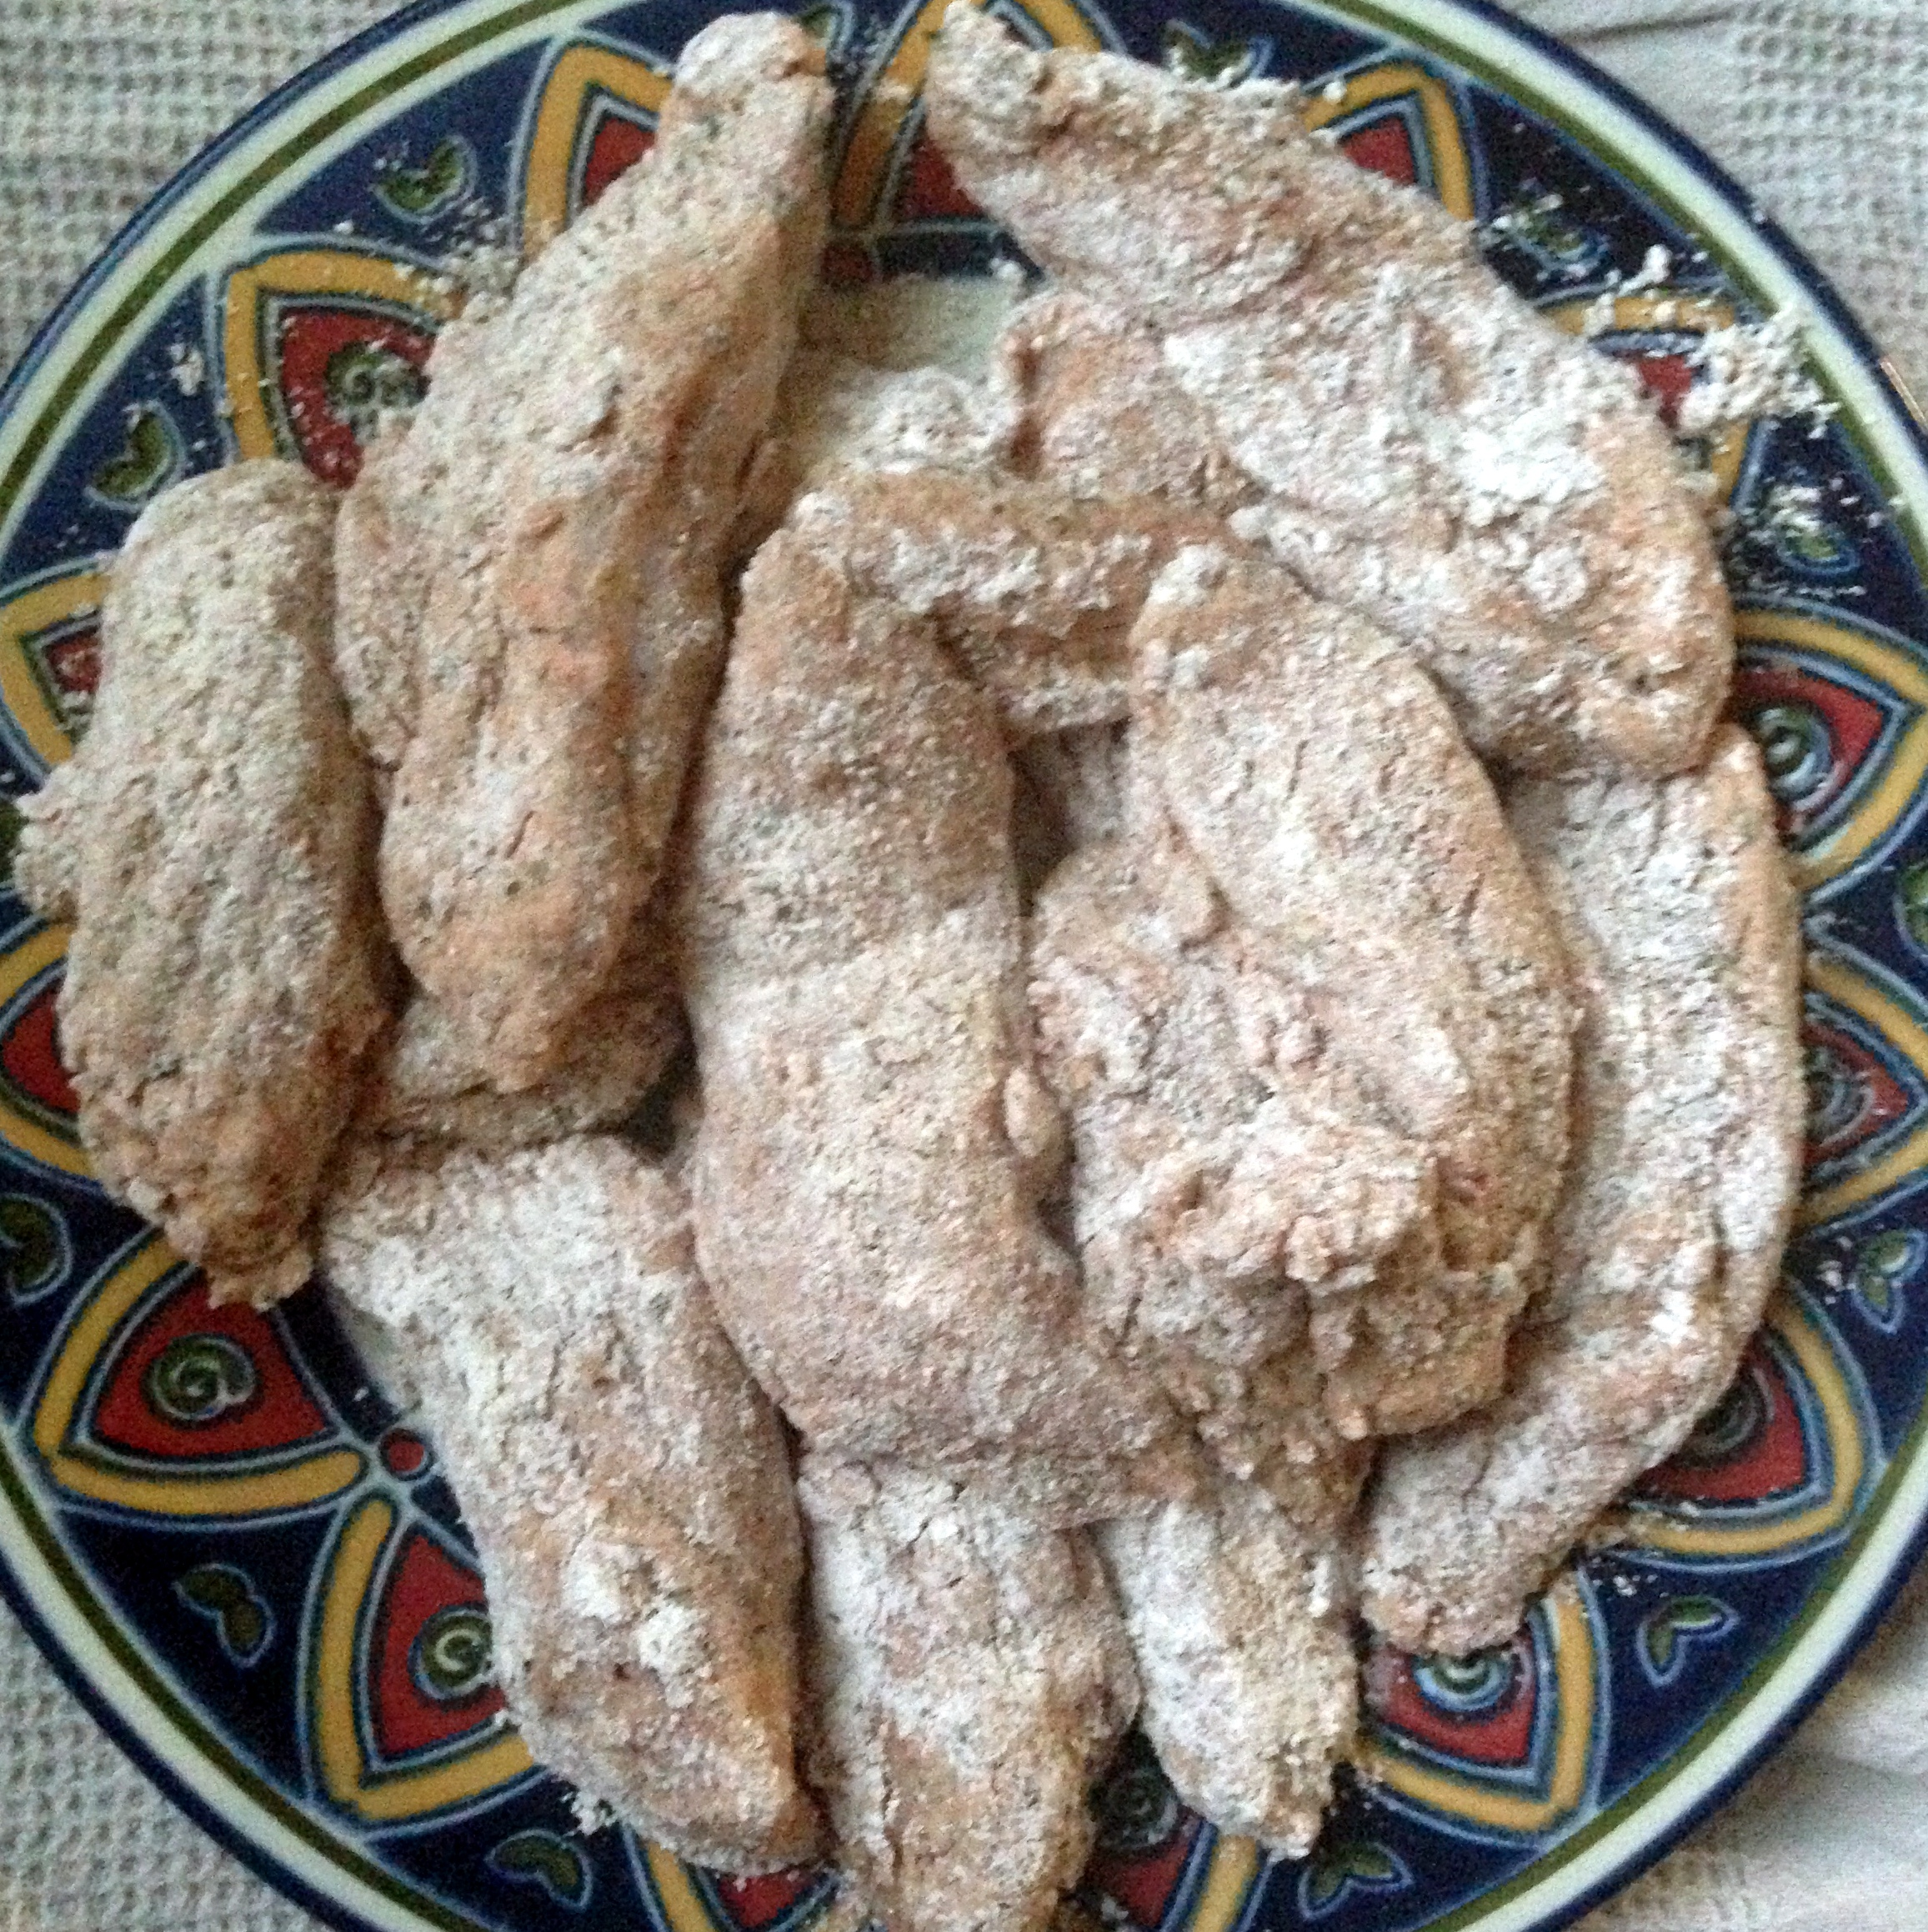 Chicken After Dredging, Ready to Fry